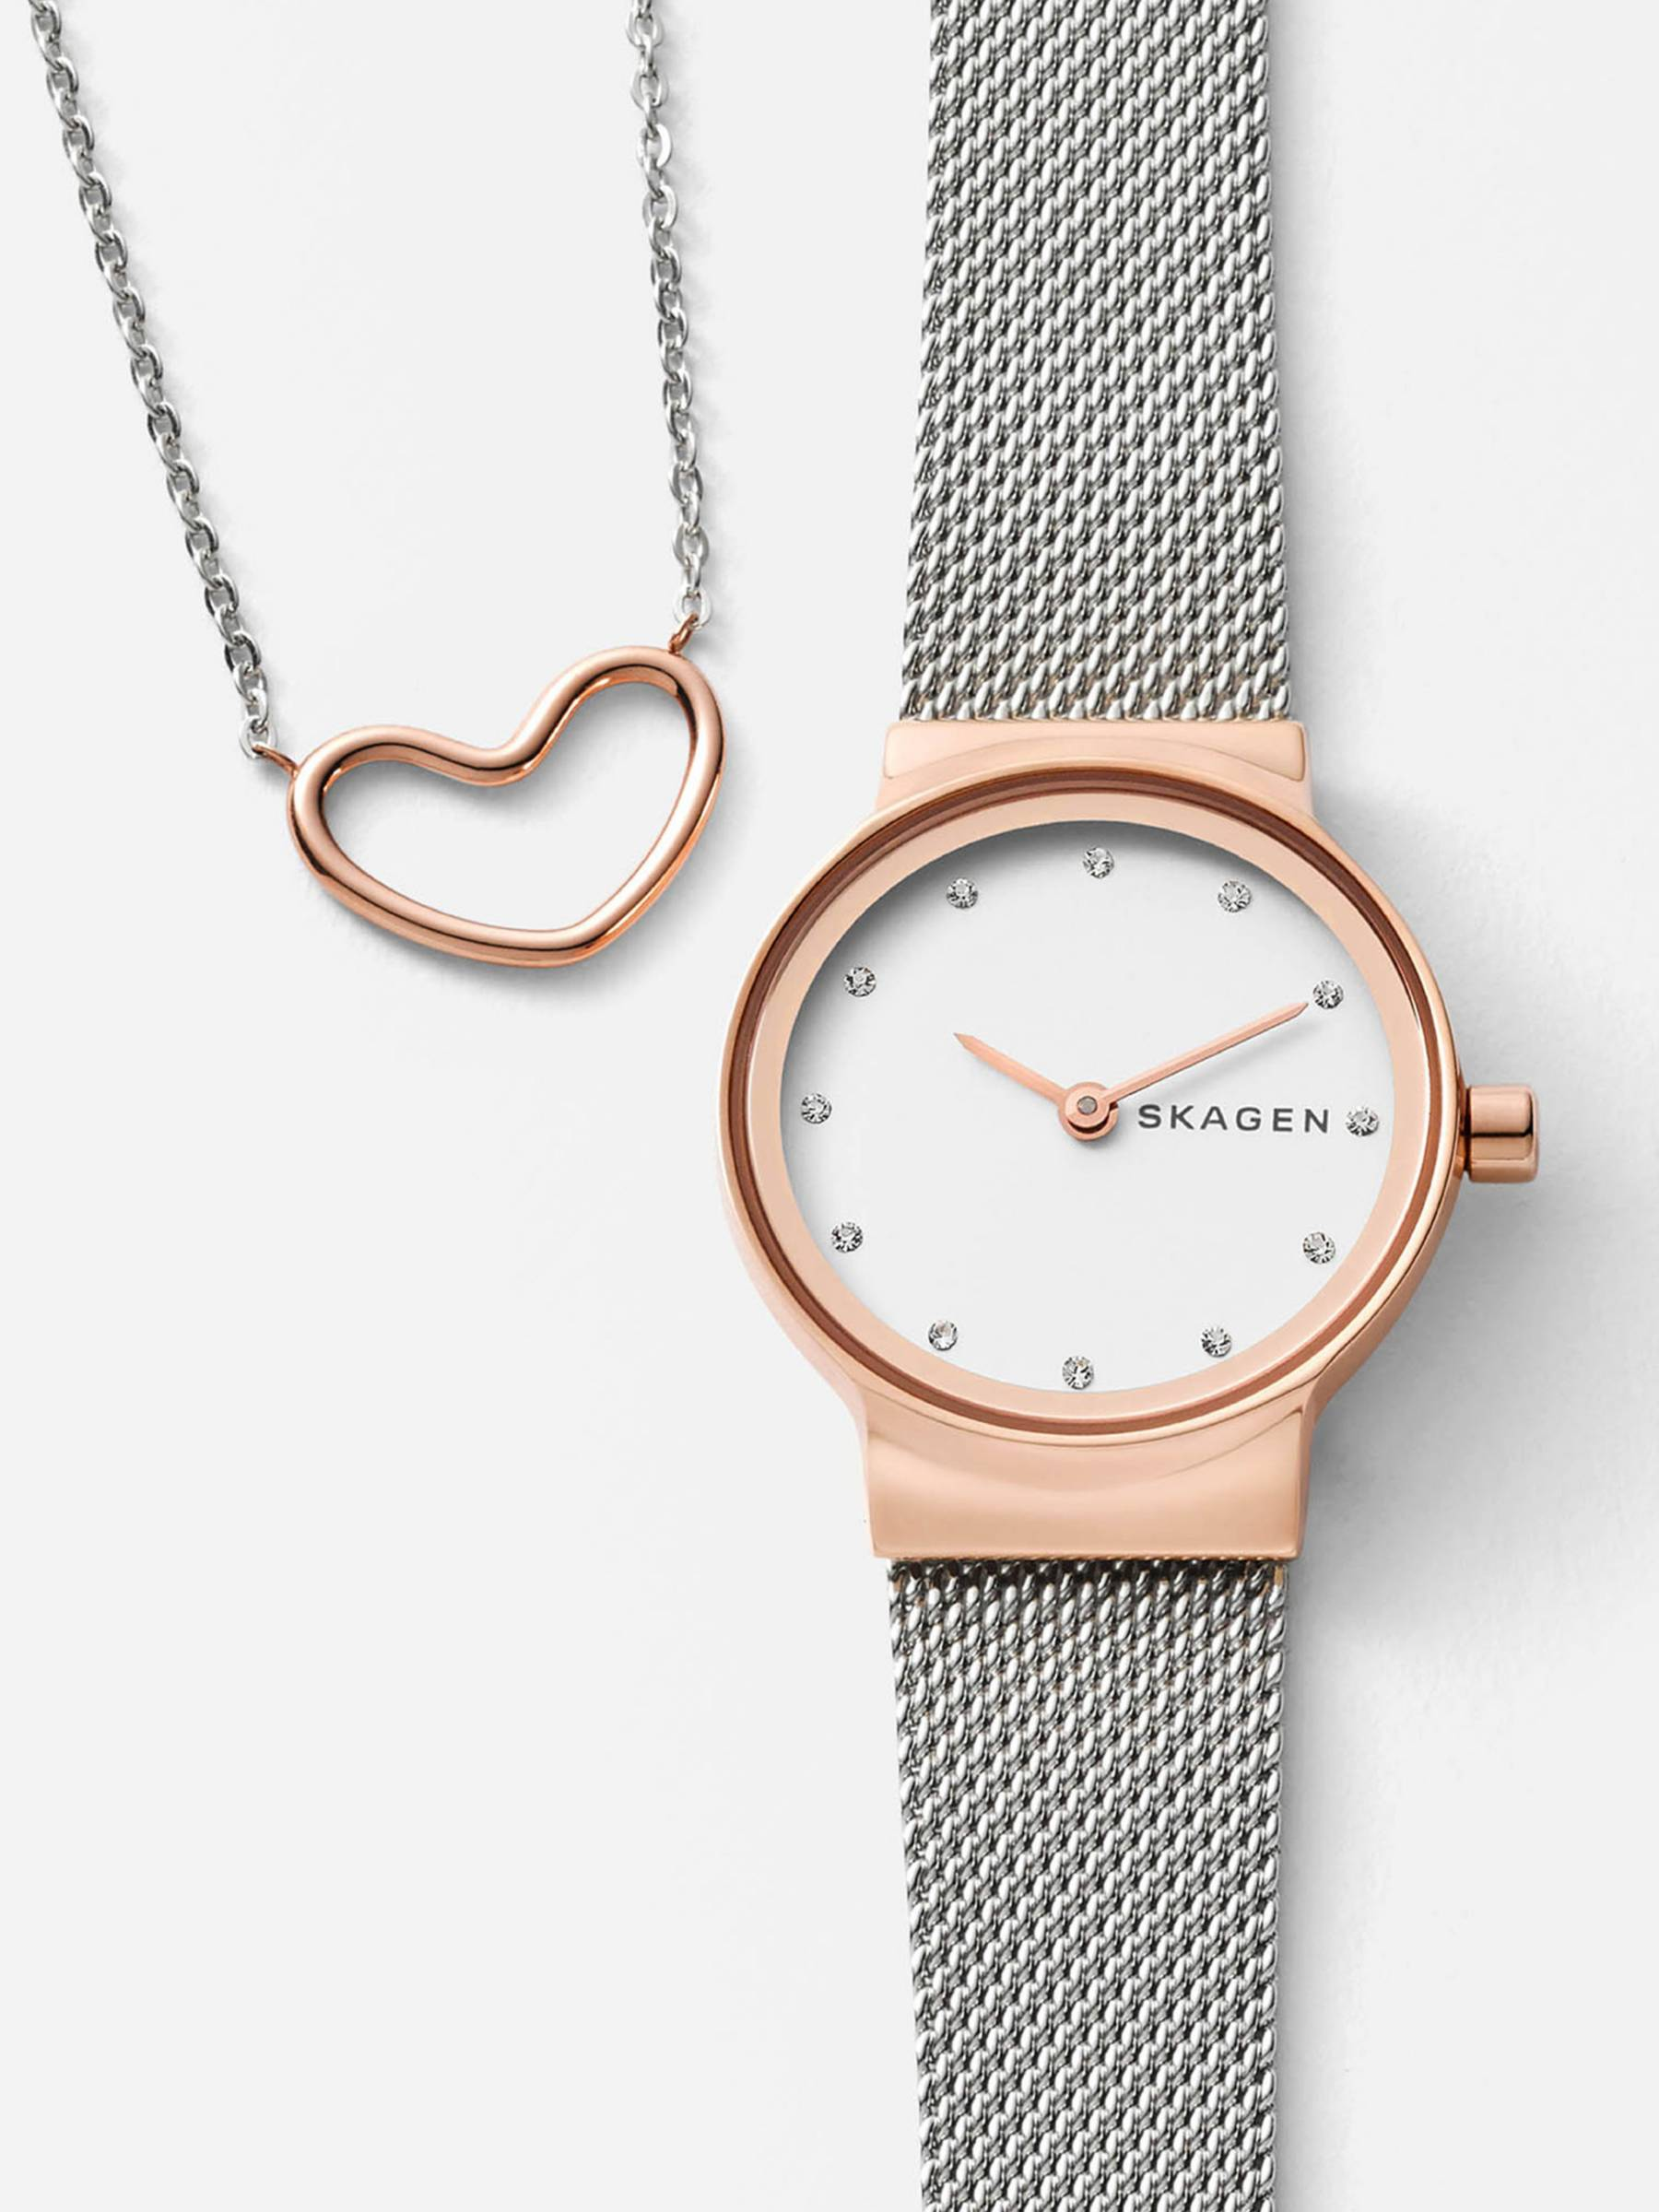 Skagen watch and heart necklace